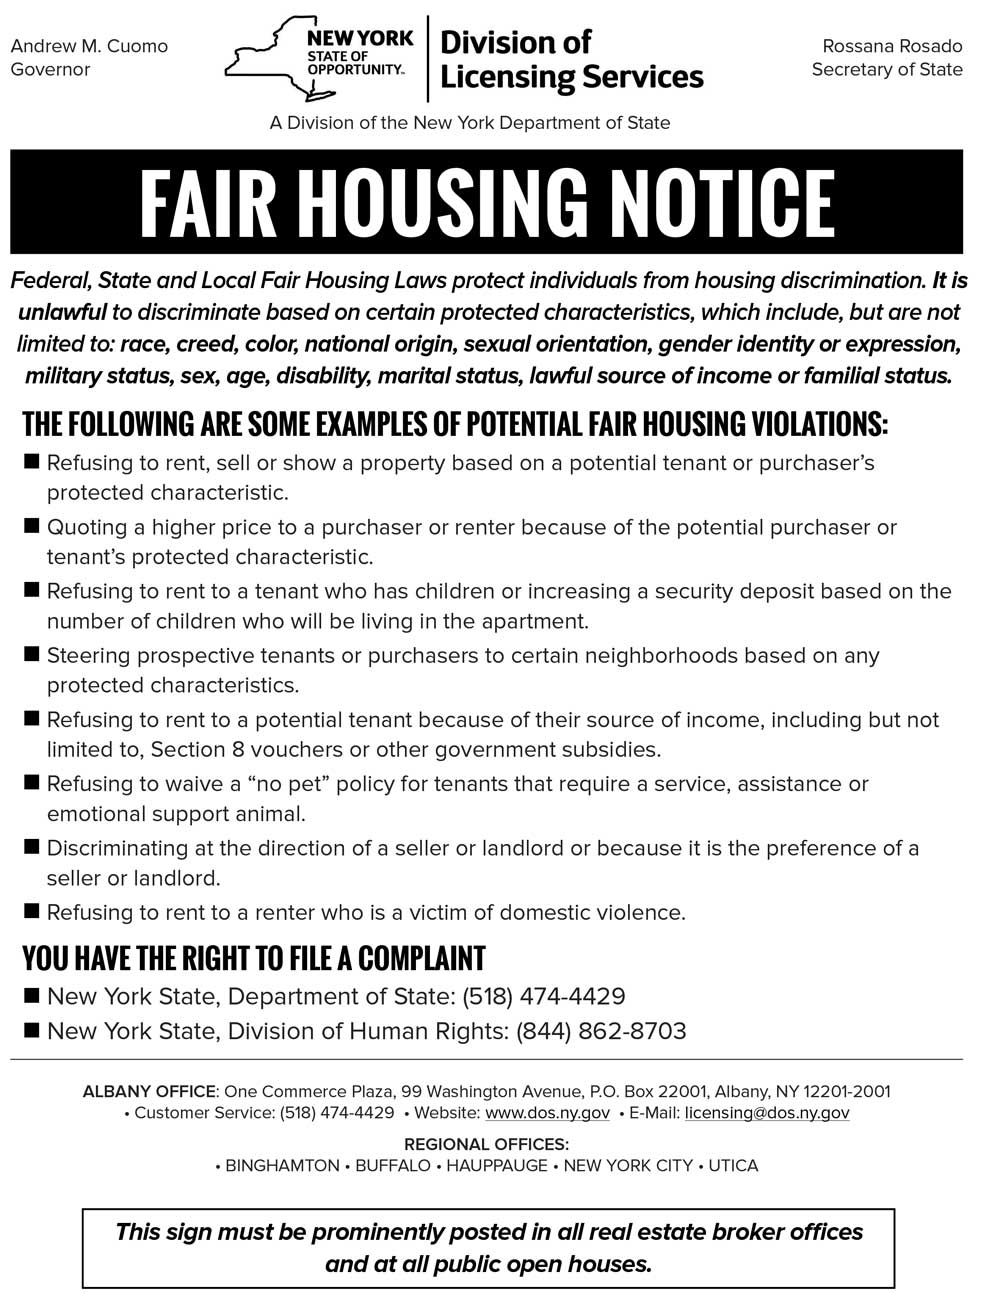 NYS Fair Housing Notice